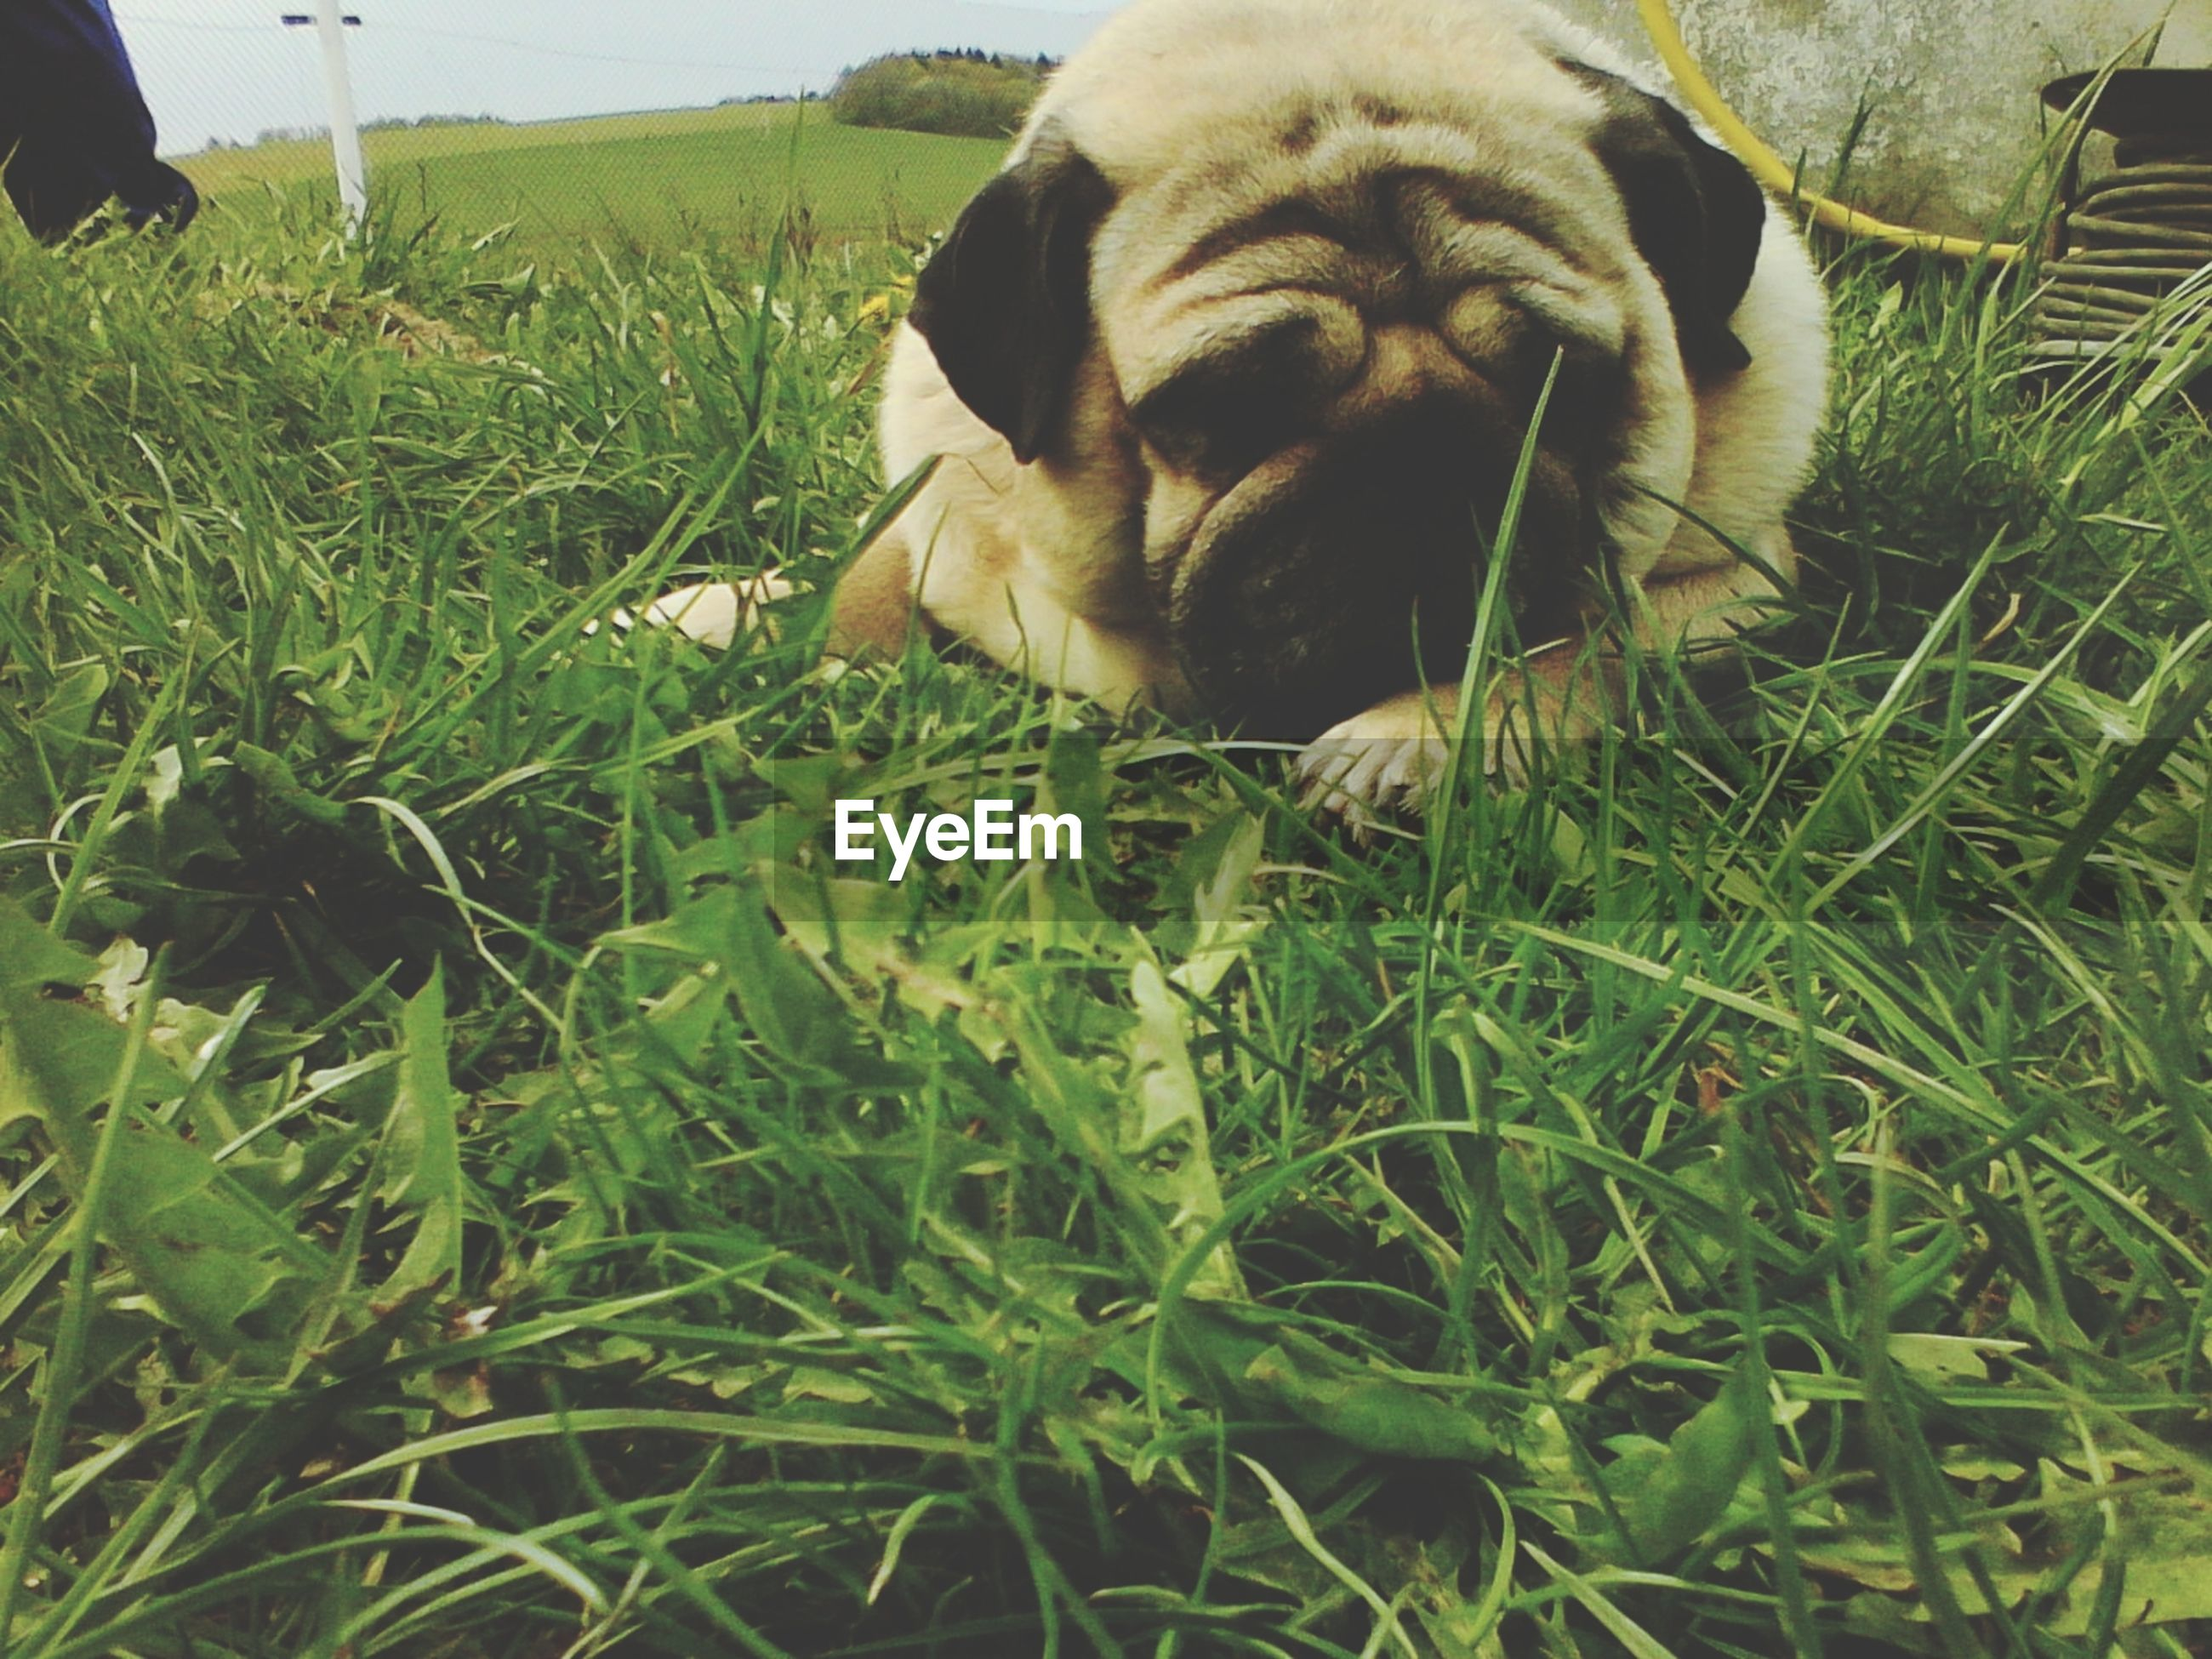 pets, domestic animals, mammal, dog, animal themes, one animal, grass, relaxation, field, grassy, lying down, green color, high angle view, resting, sitting, day, no people, outdoors, pet collar, nature